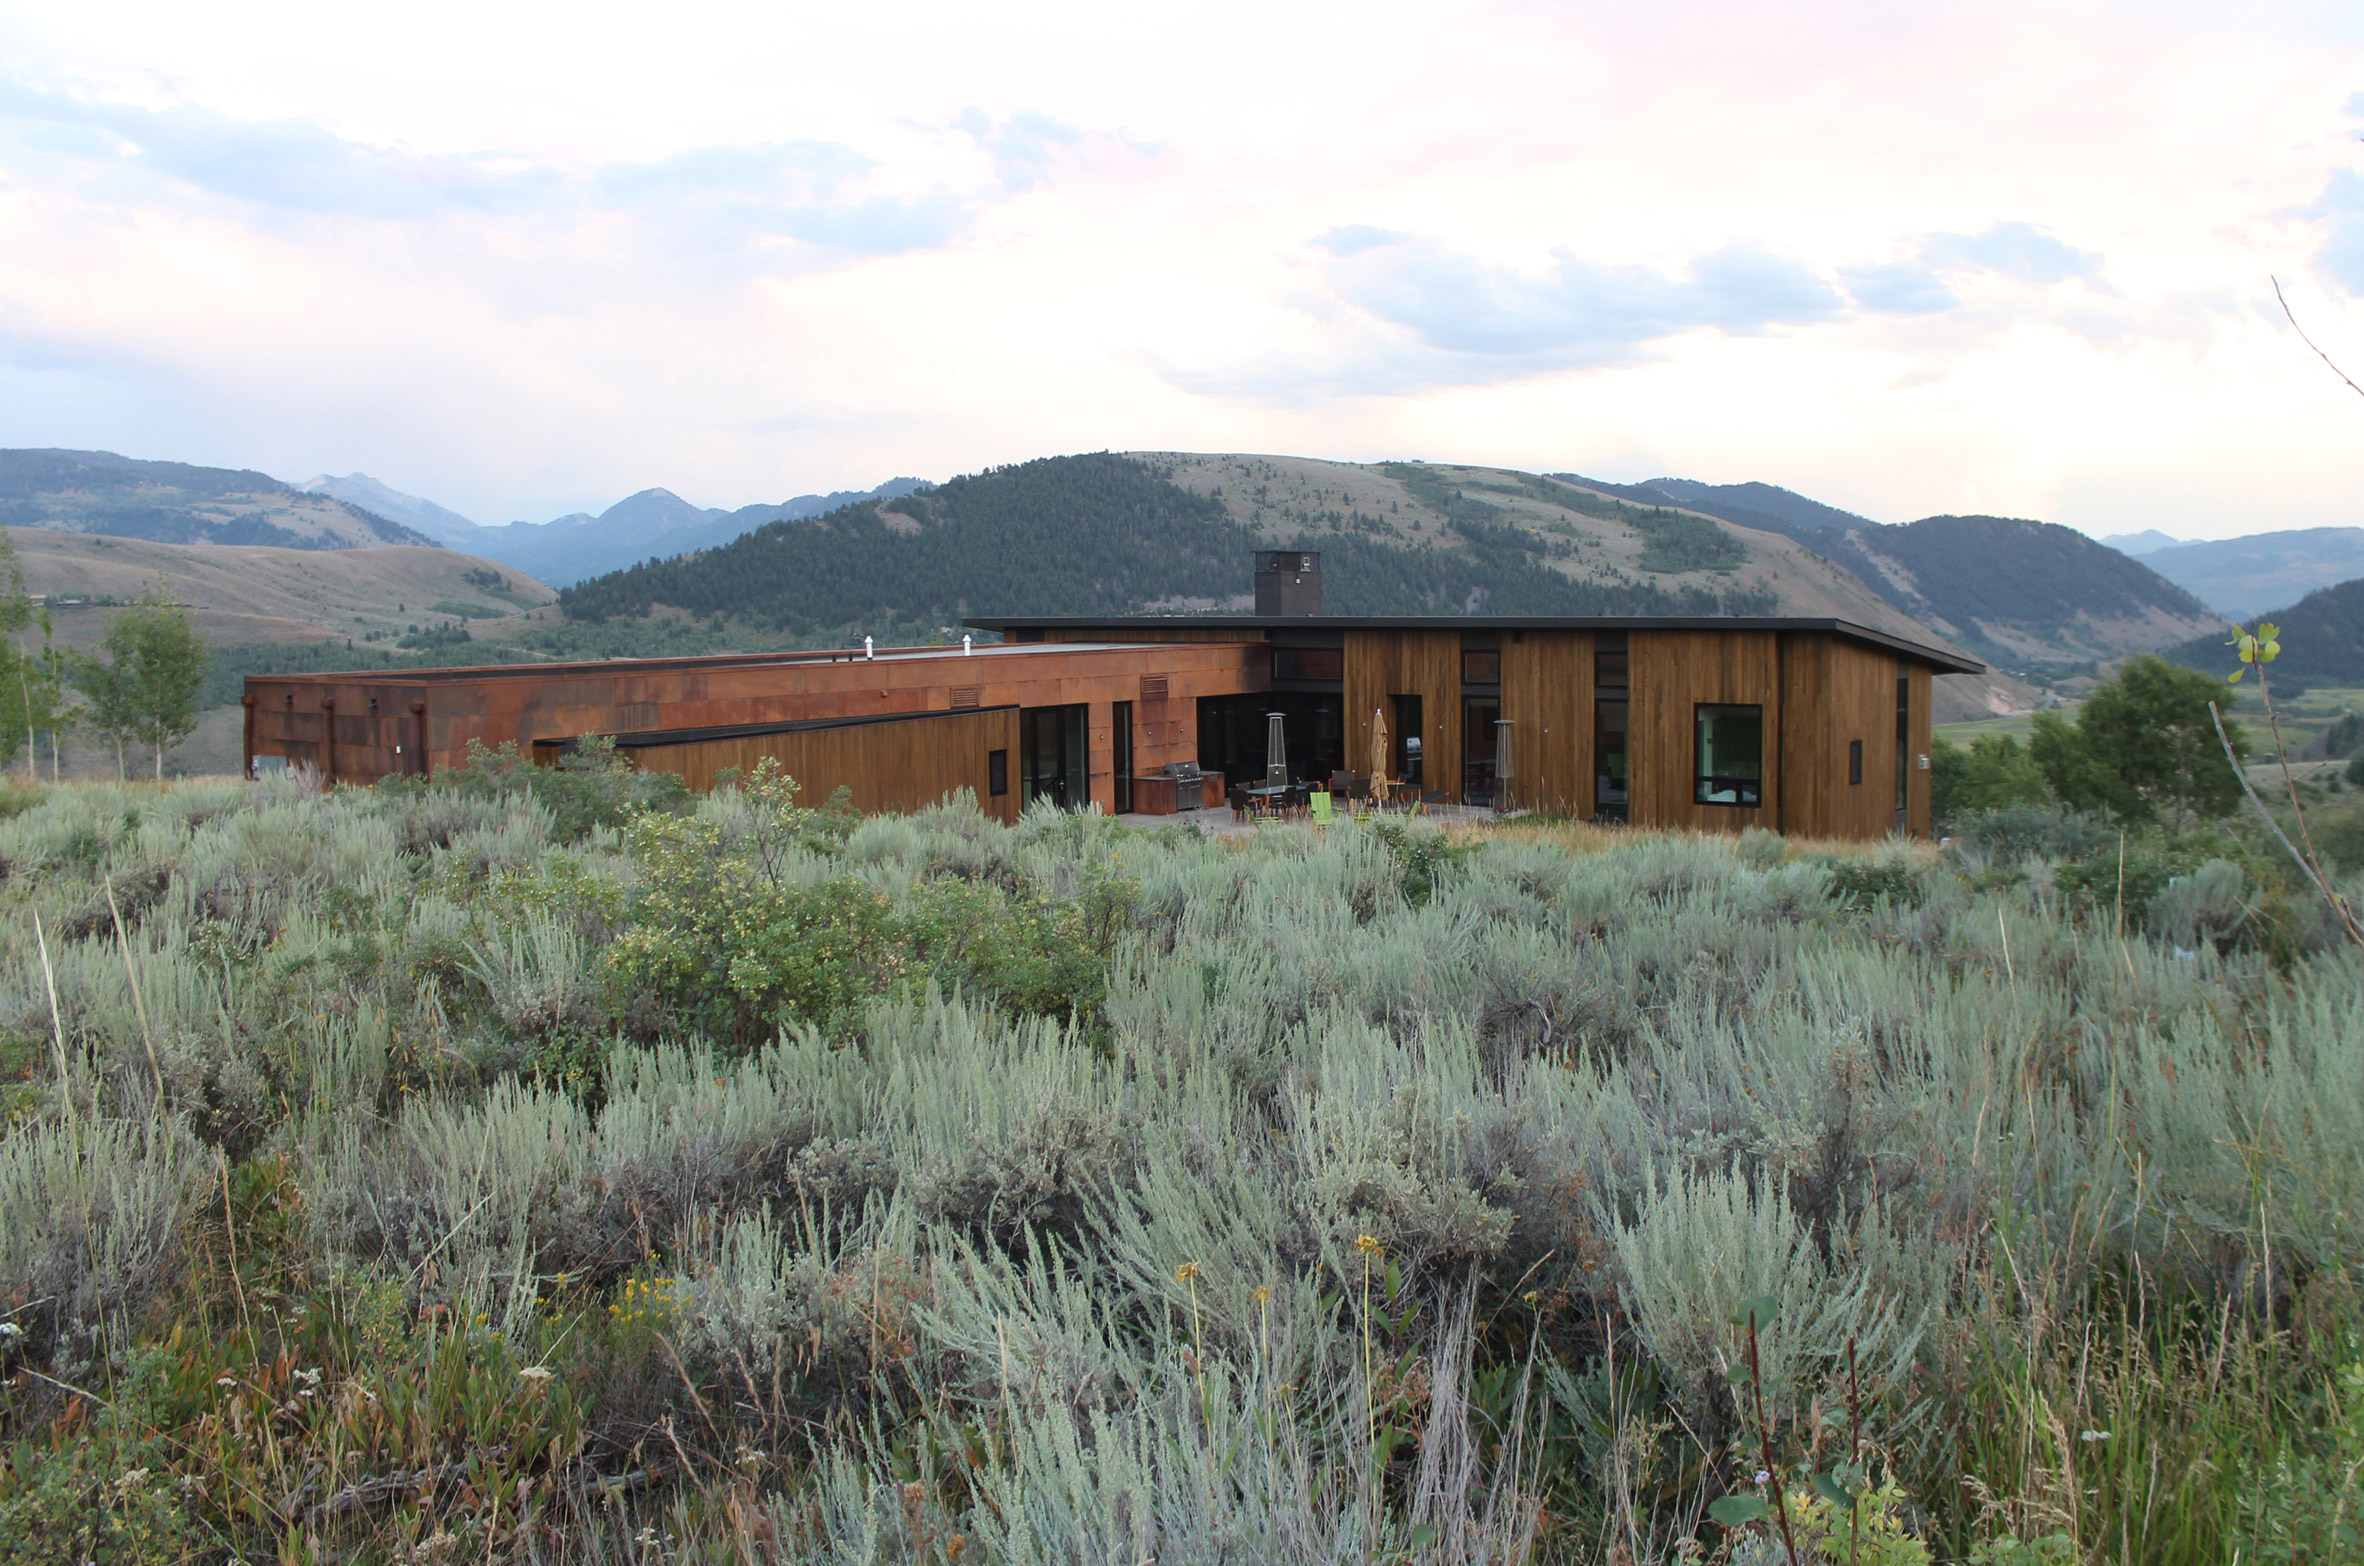 Gros Ventre house by Dynia sits among rugged Wyoming terrain